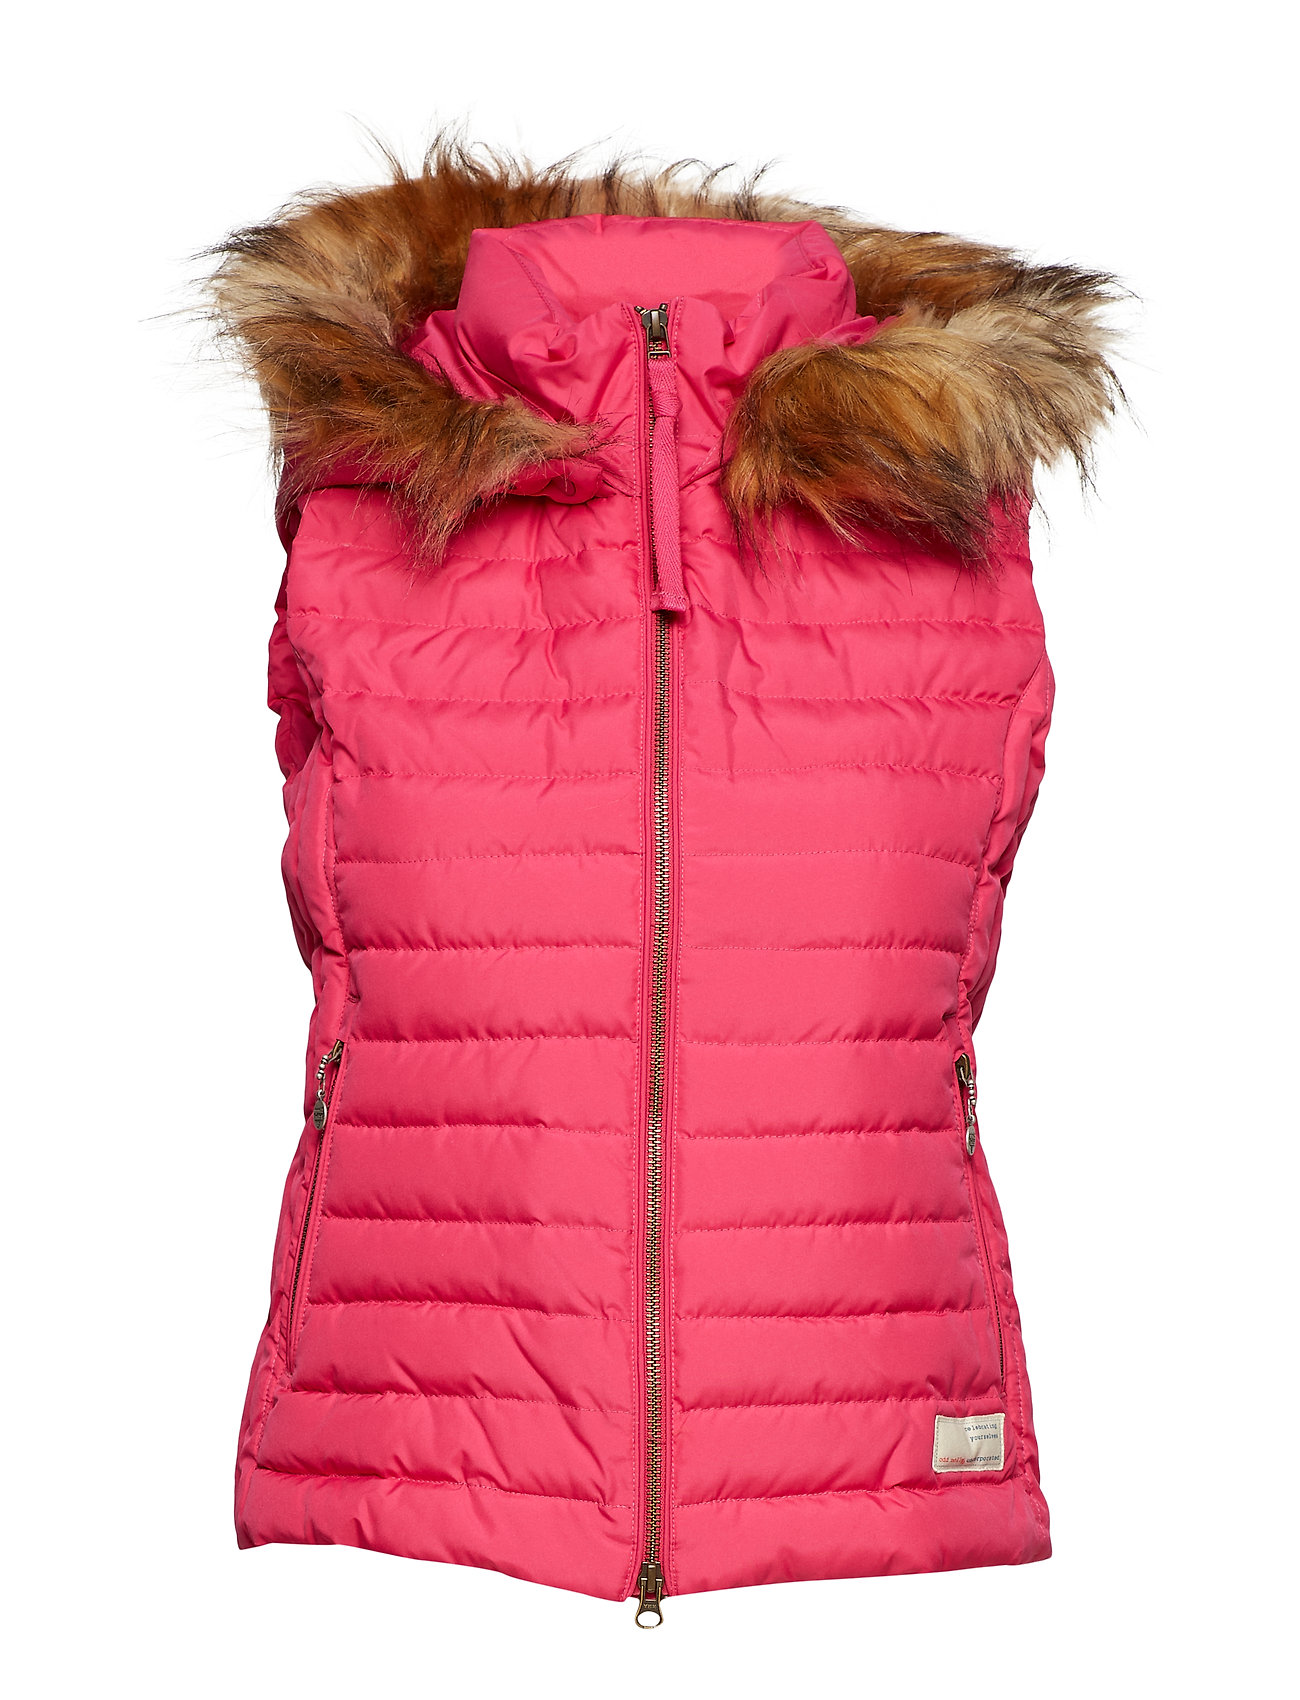 Active Wear Earth PinkOdd Saver Vesthot Molly POk0nw